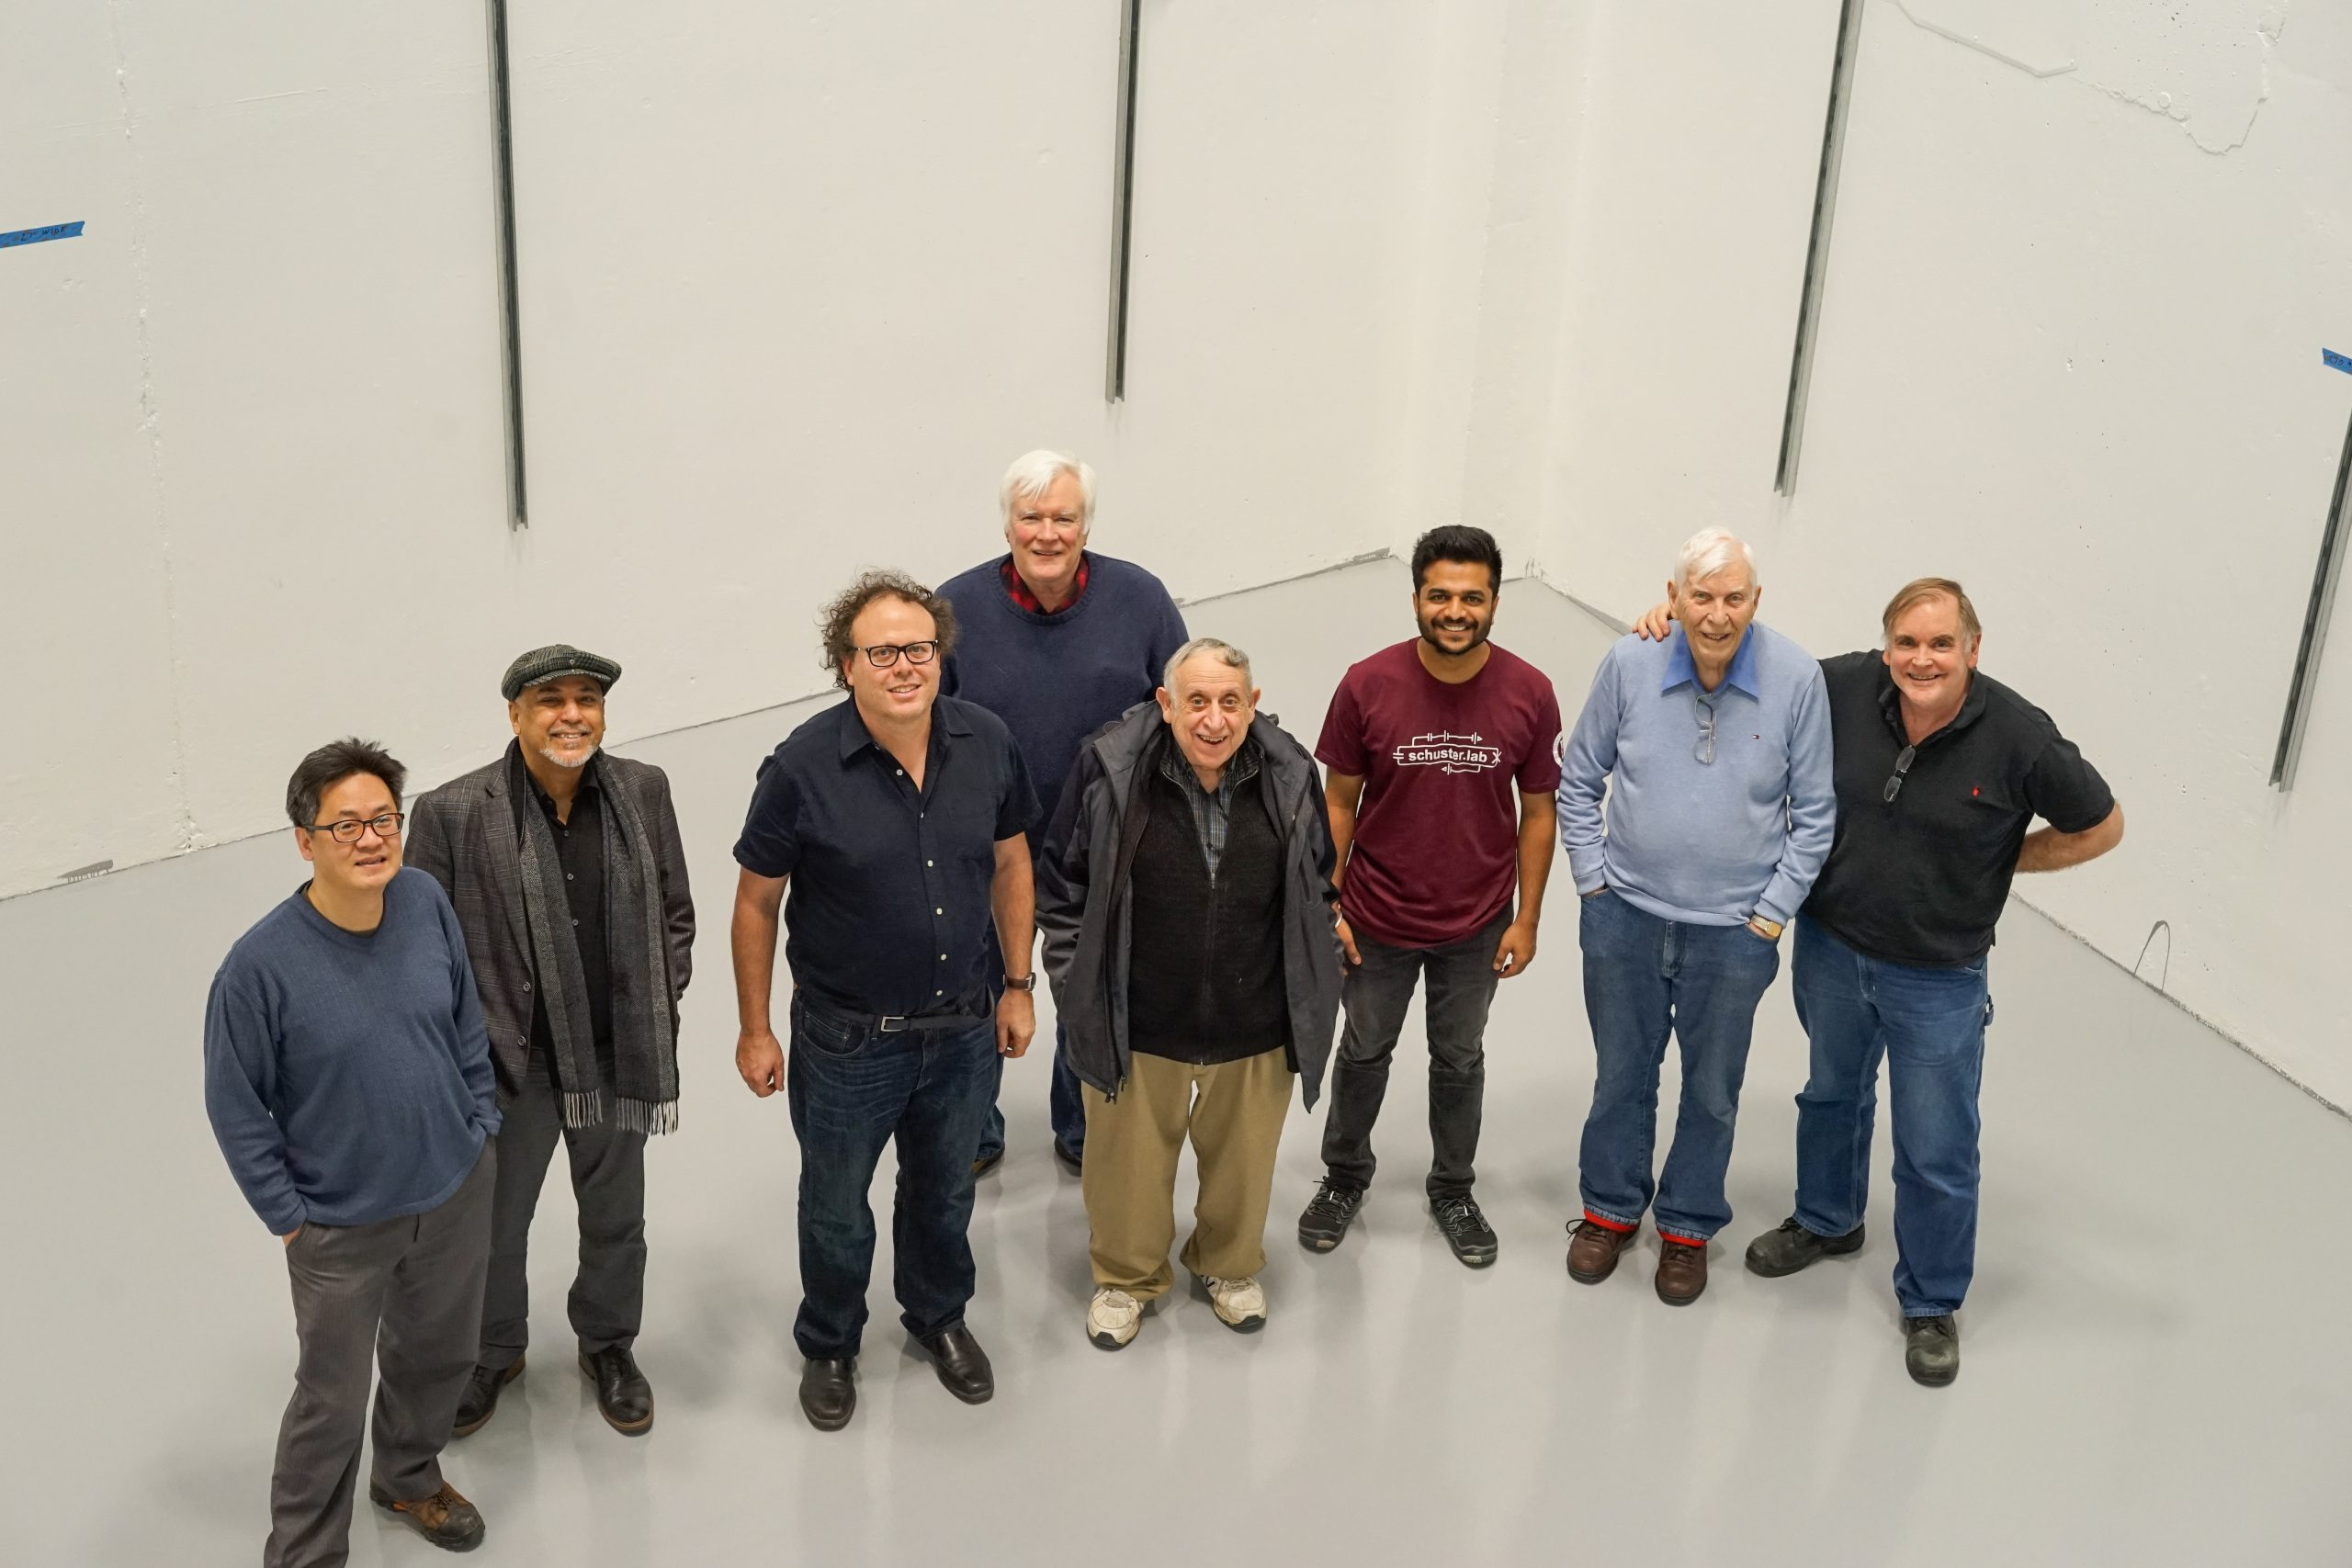 Flashback Friday: In February 2018, Scientists working on quantum sensor R&D to search for axion dark matter rejoice in their new space in Lab B. Among them is the late, great Alvin Tollestrup, second from the right. people Photo: Leticia Shaddix